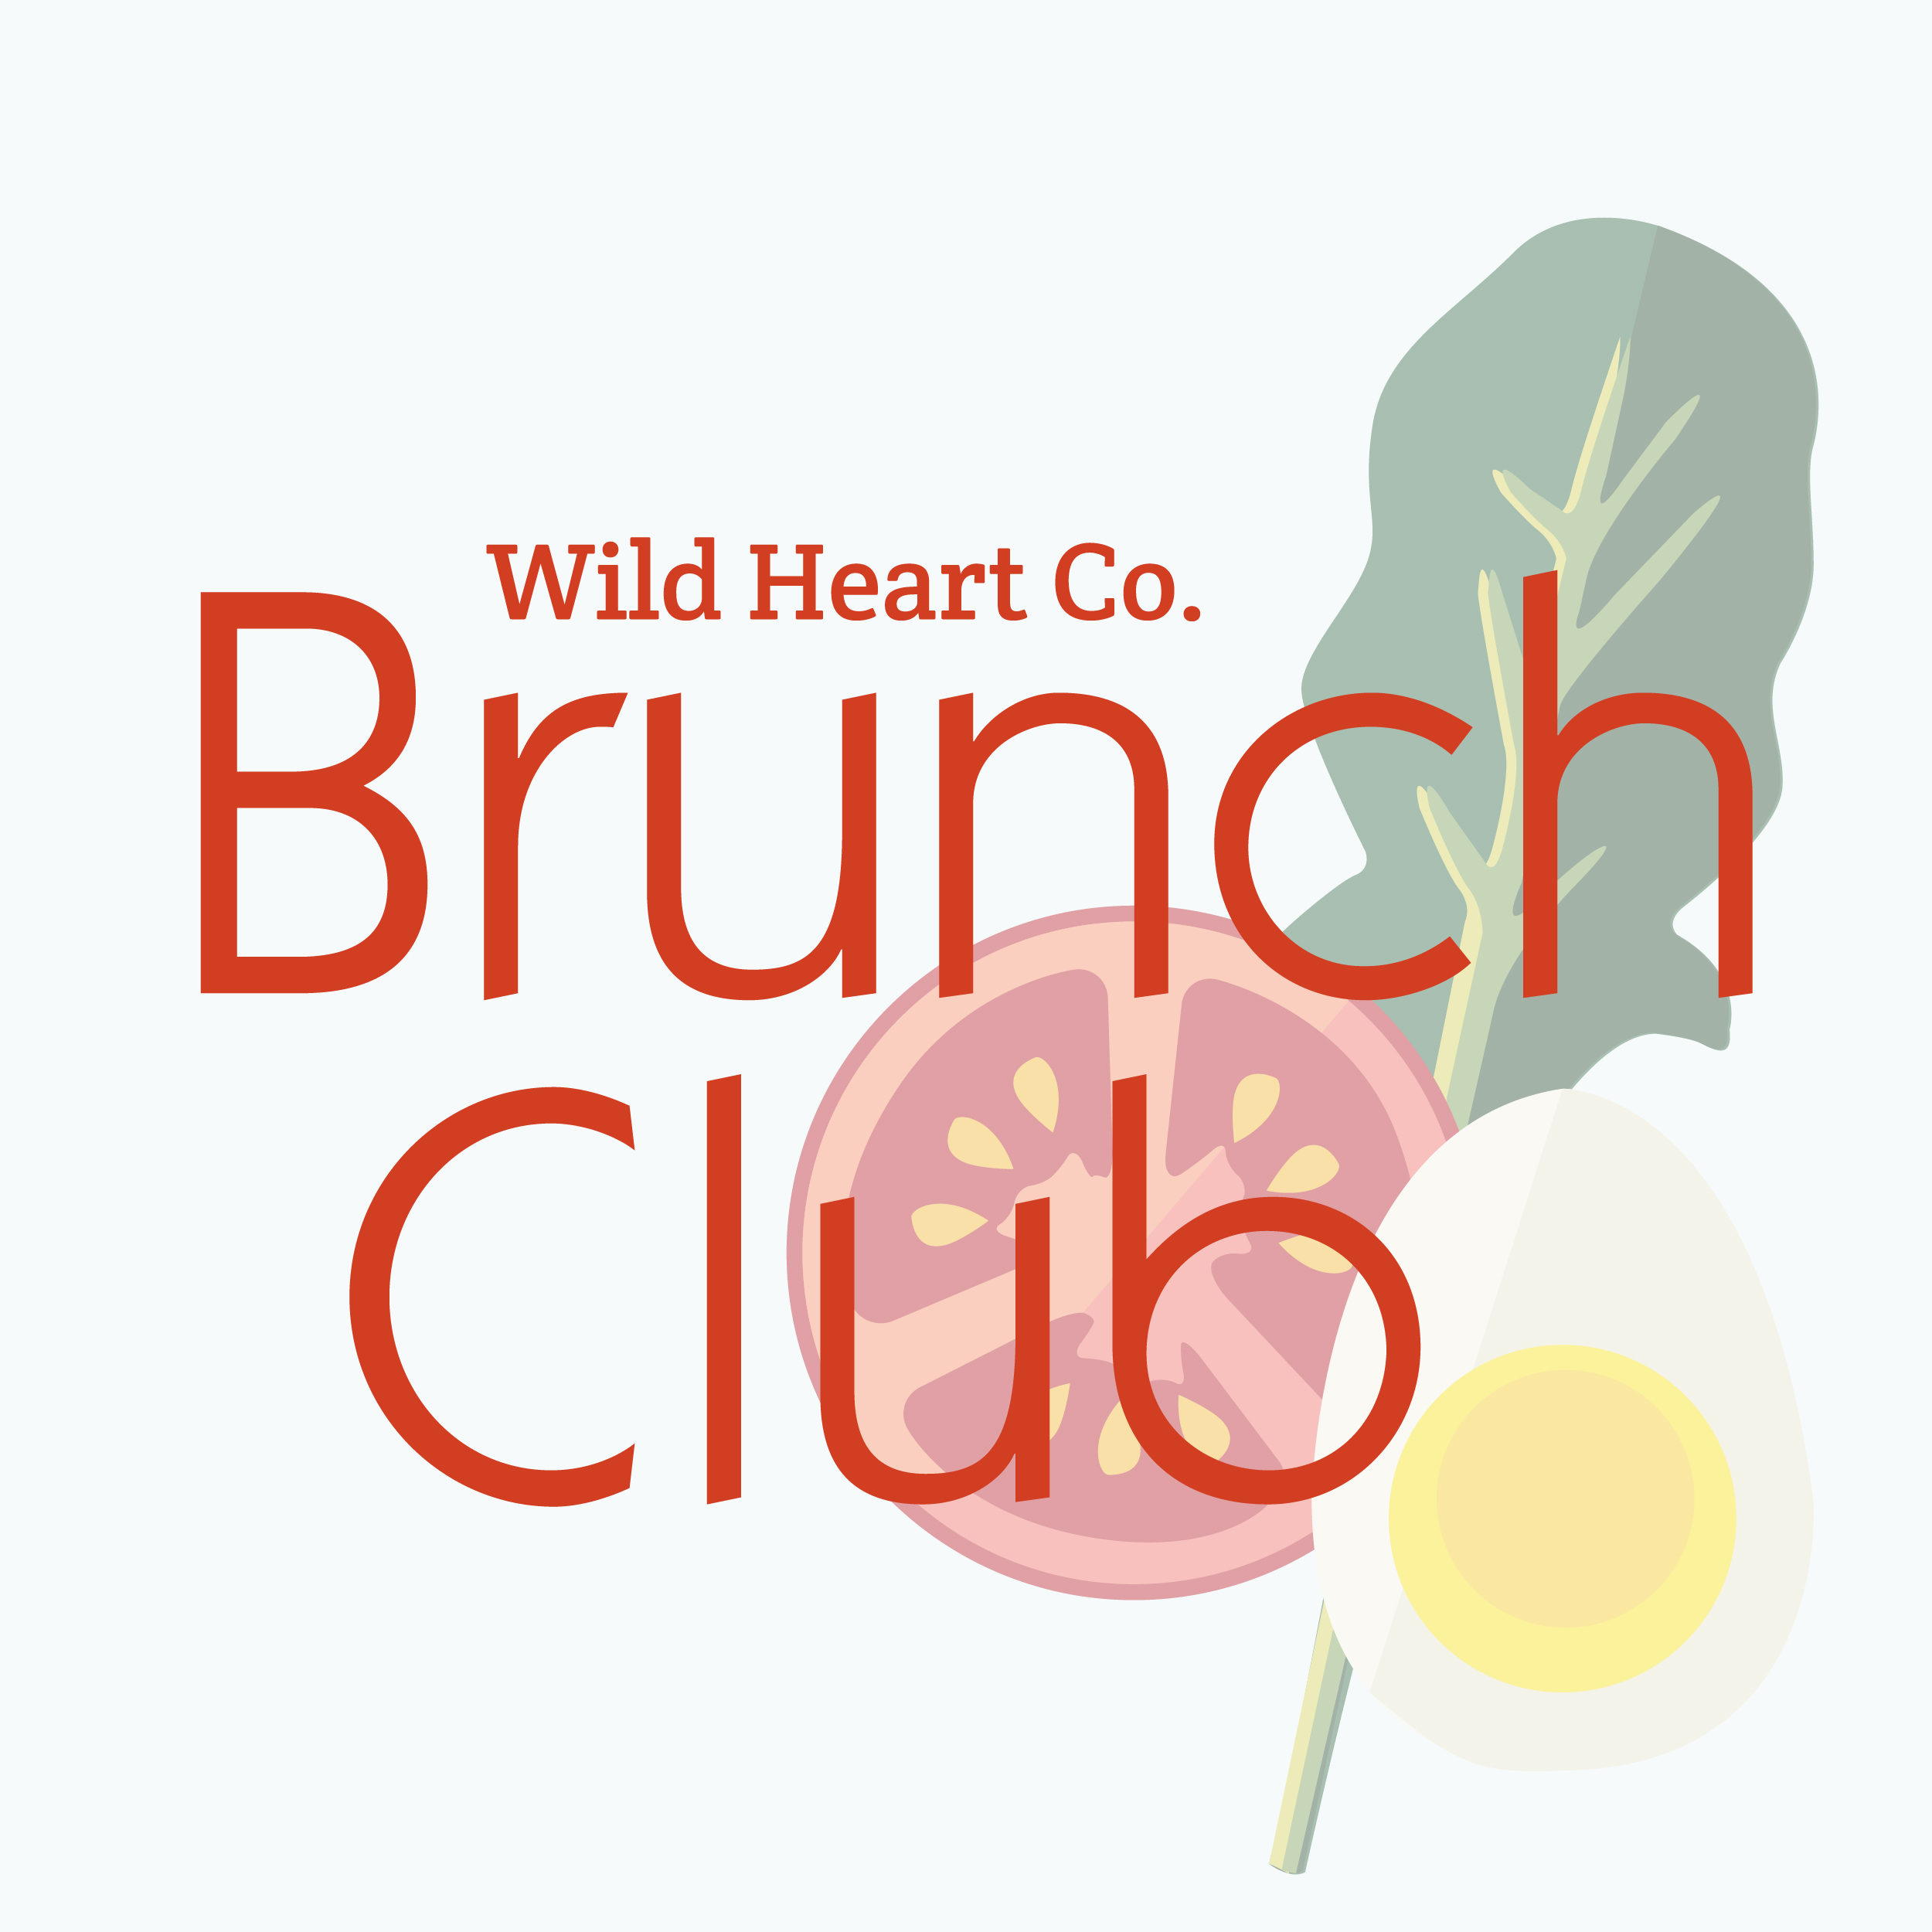 Brunch Club assets-02.jpg